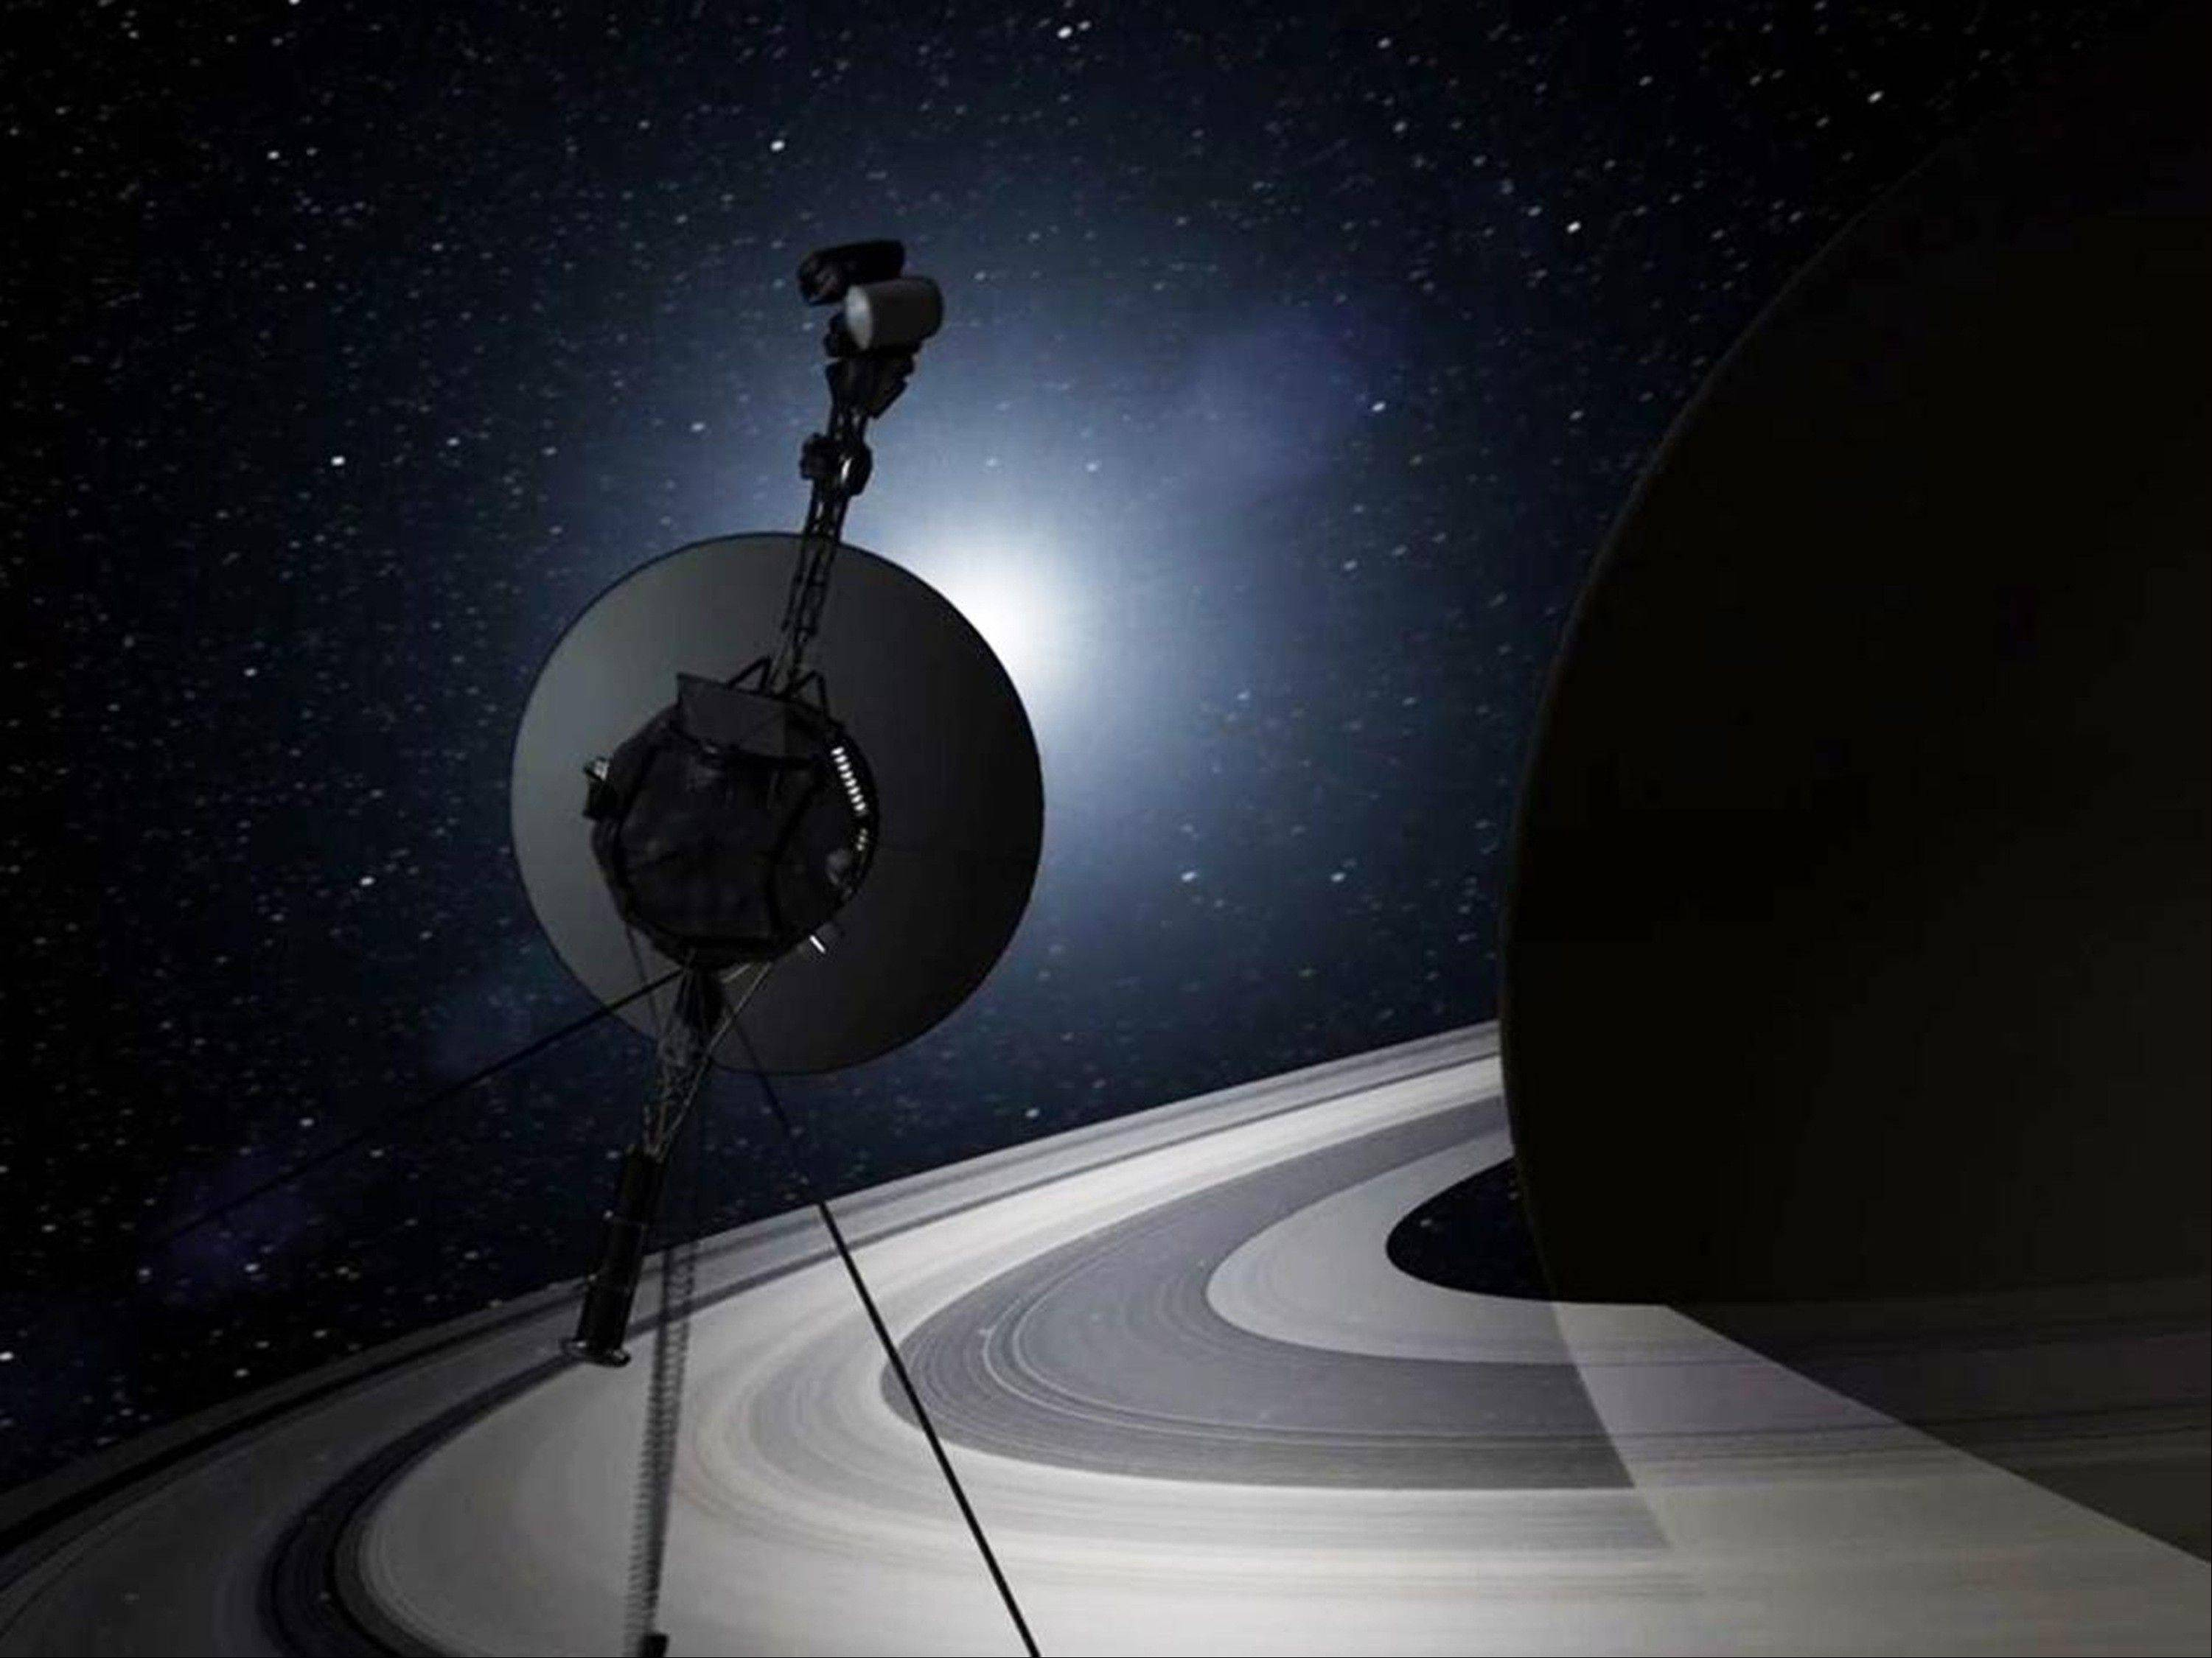 Thirty-five years after leaving Earth, Voyager 1 is reaching for the stars. Sooner or later, the workhorse spacecraft will bid adieu to the solar system.